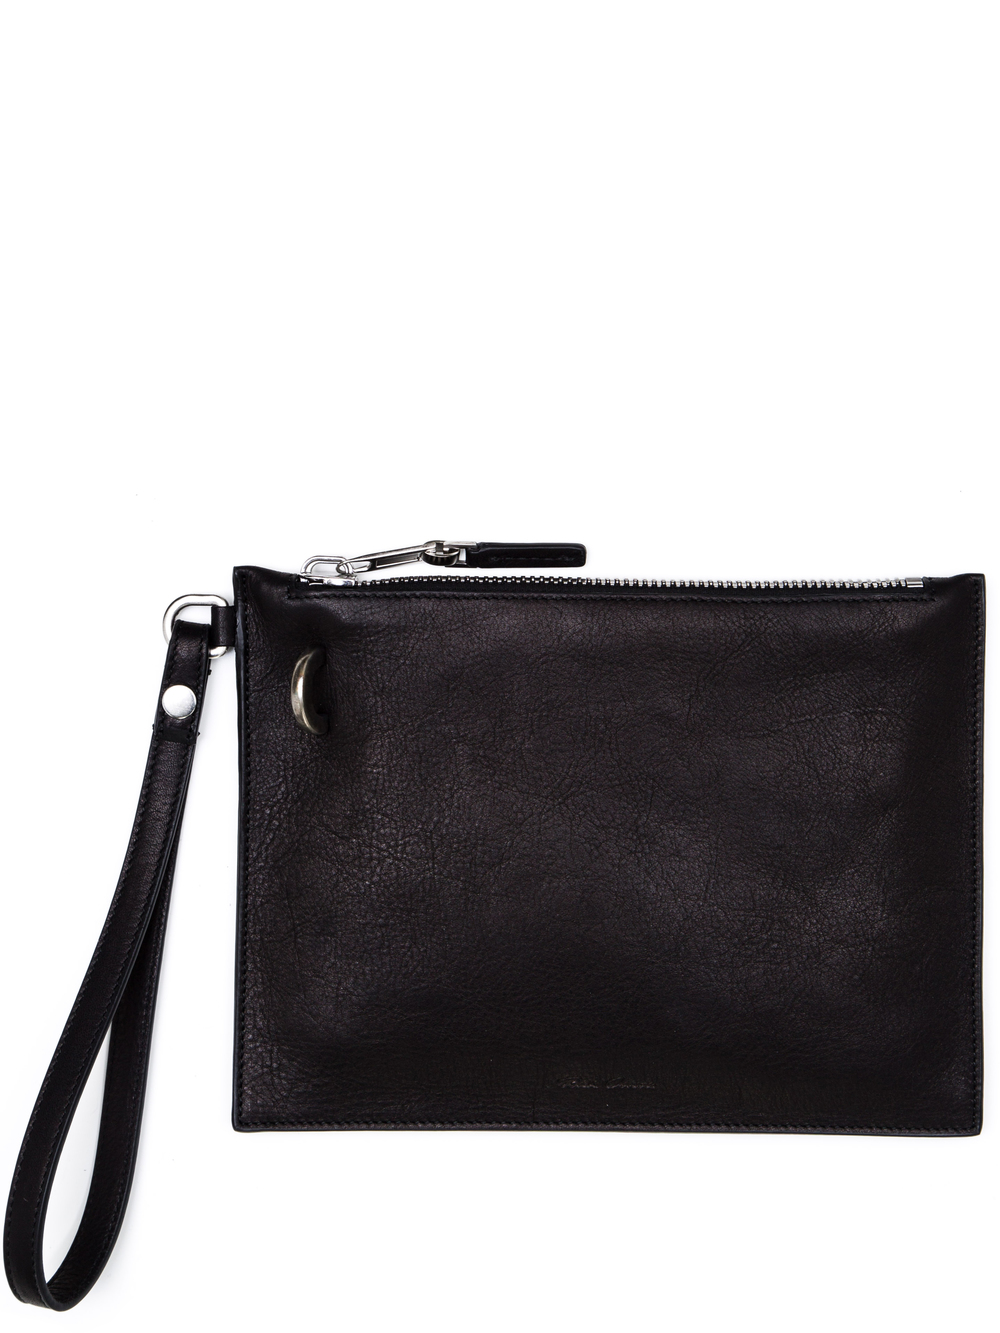 RICK OWENS WRIST POUCH IN BLACK CALF LEATHER